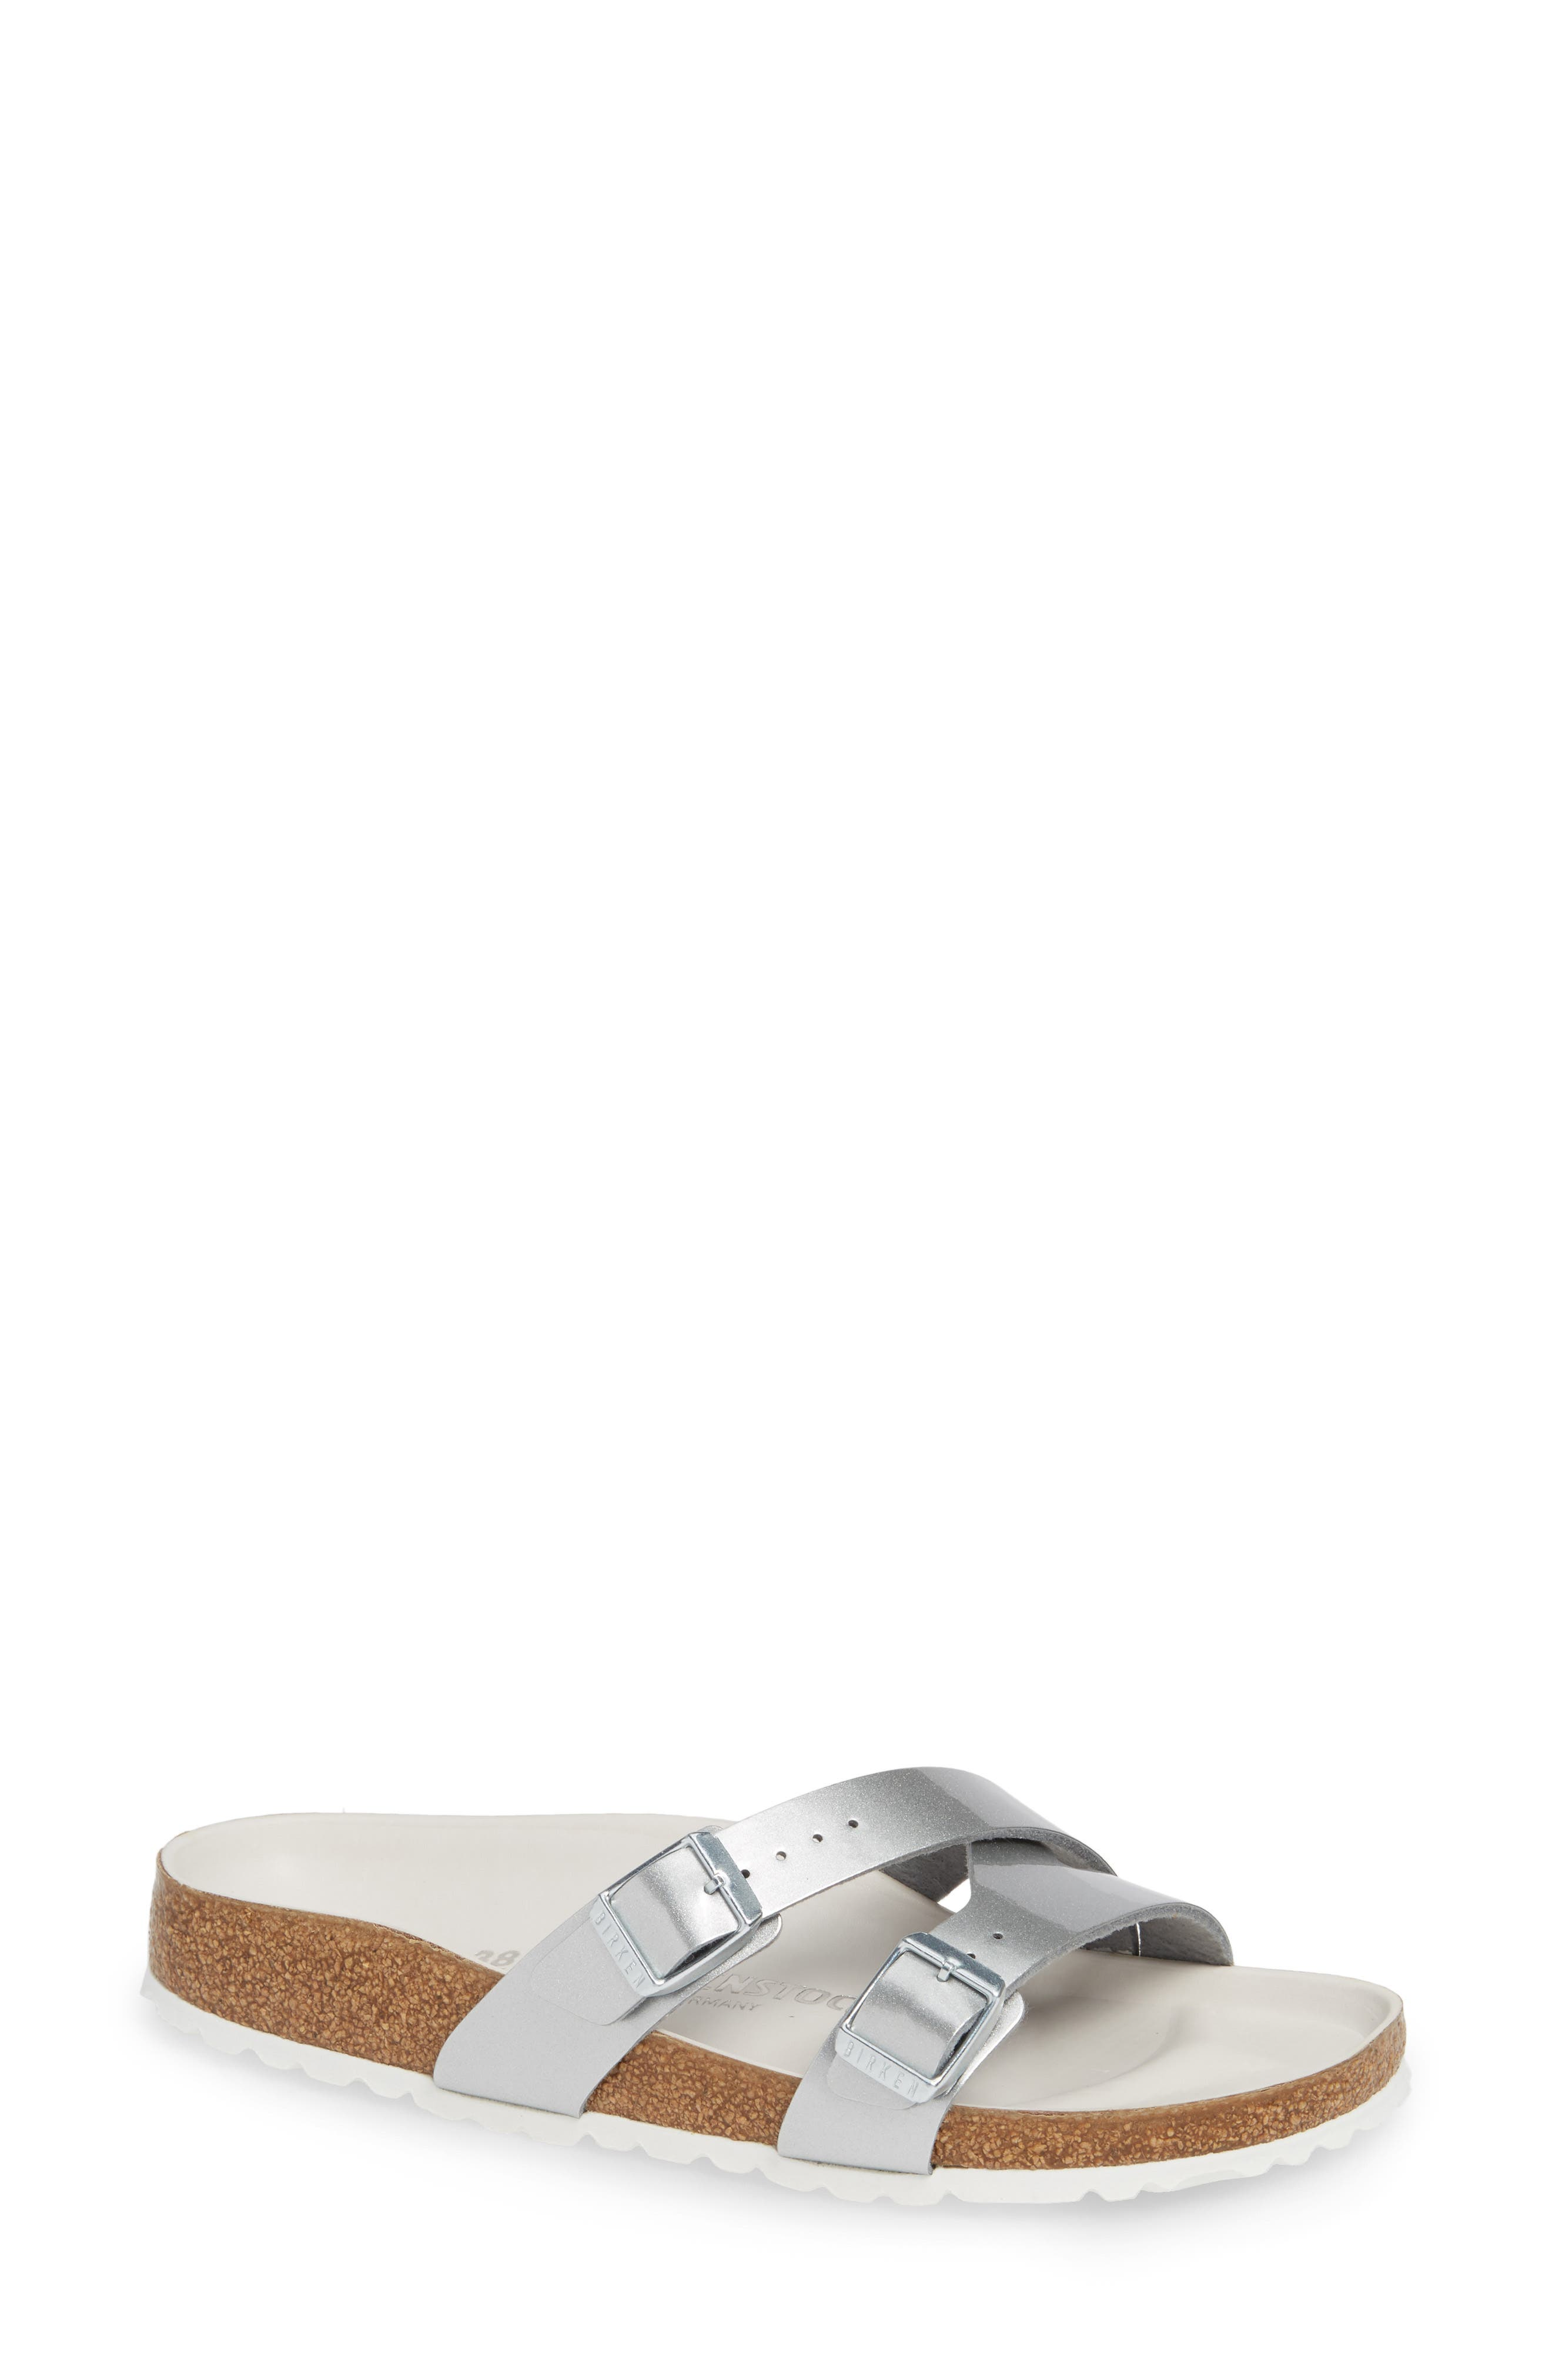 BIRKENSTOCK Yao Metallic Slide Sandal, Main, color, METALLIC SILVER